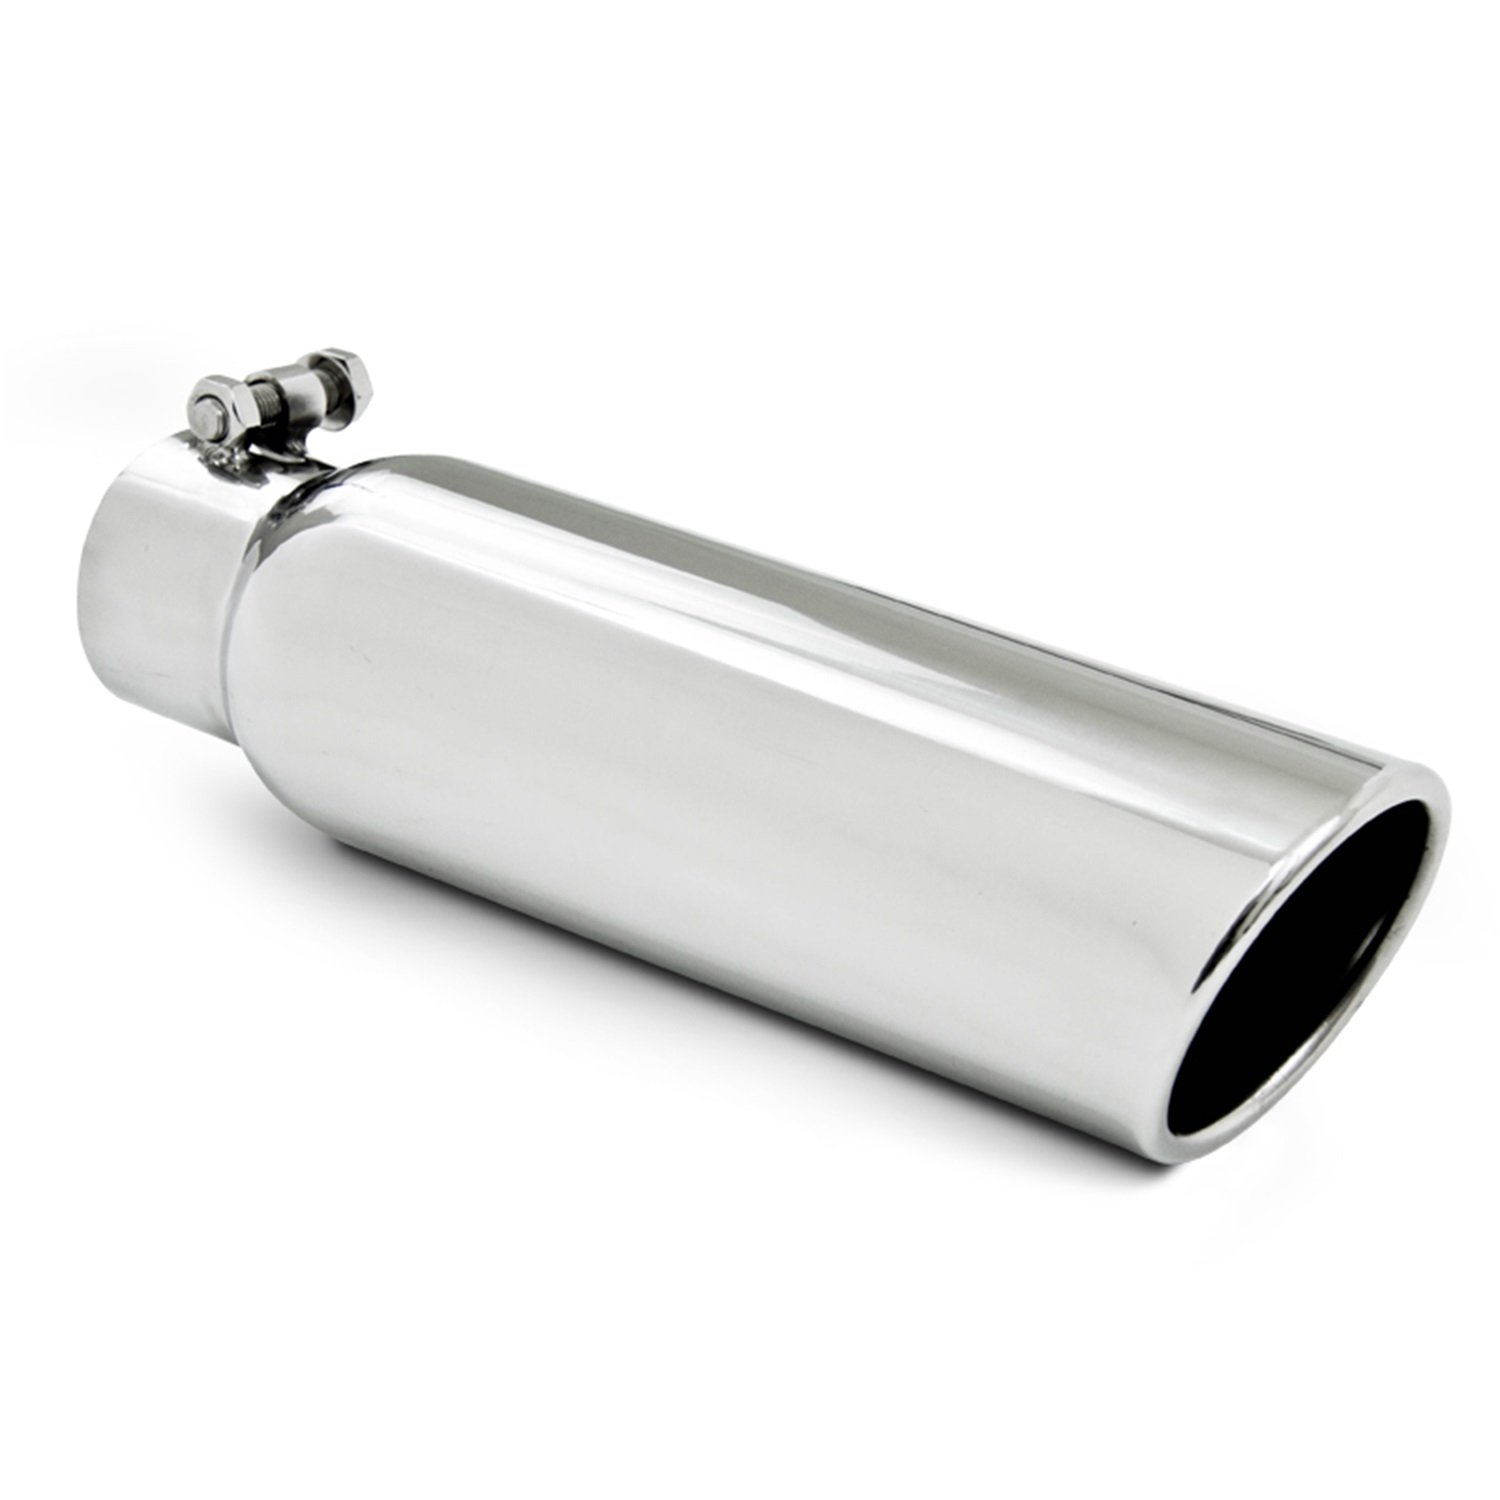 "MBRP T5148 3.5"" O.D. 2.5"" Inlet 12"" Length T304 Stainless Steel Angled Cut Rolled End Clampless Exhaust Tip"